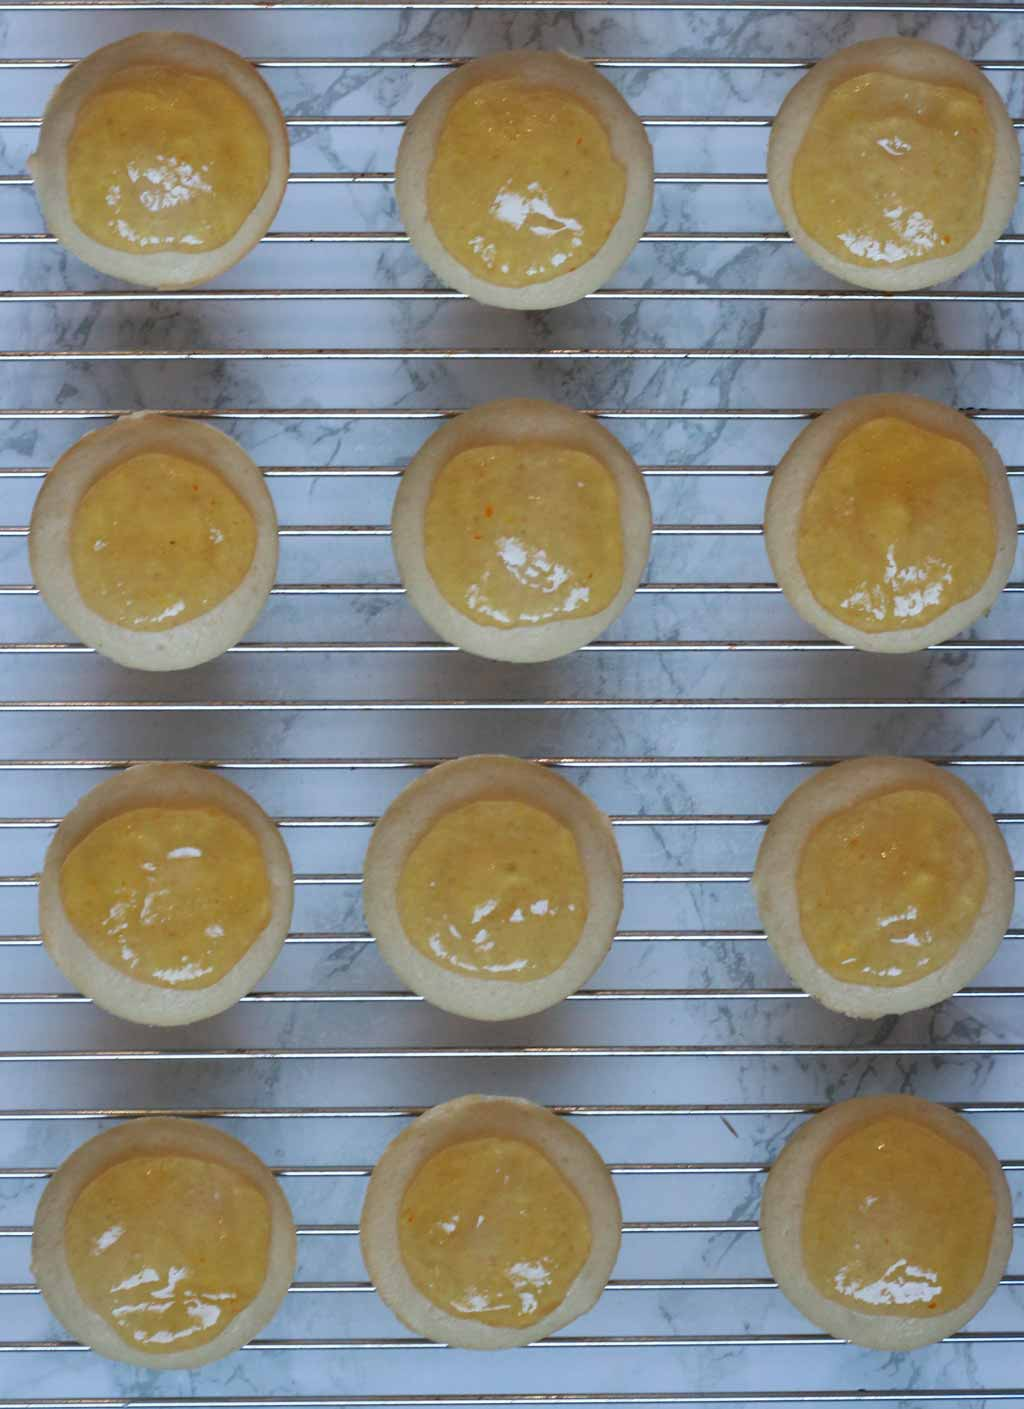 Circles Of Marmalade On Top Of The Cakes